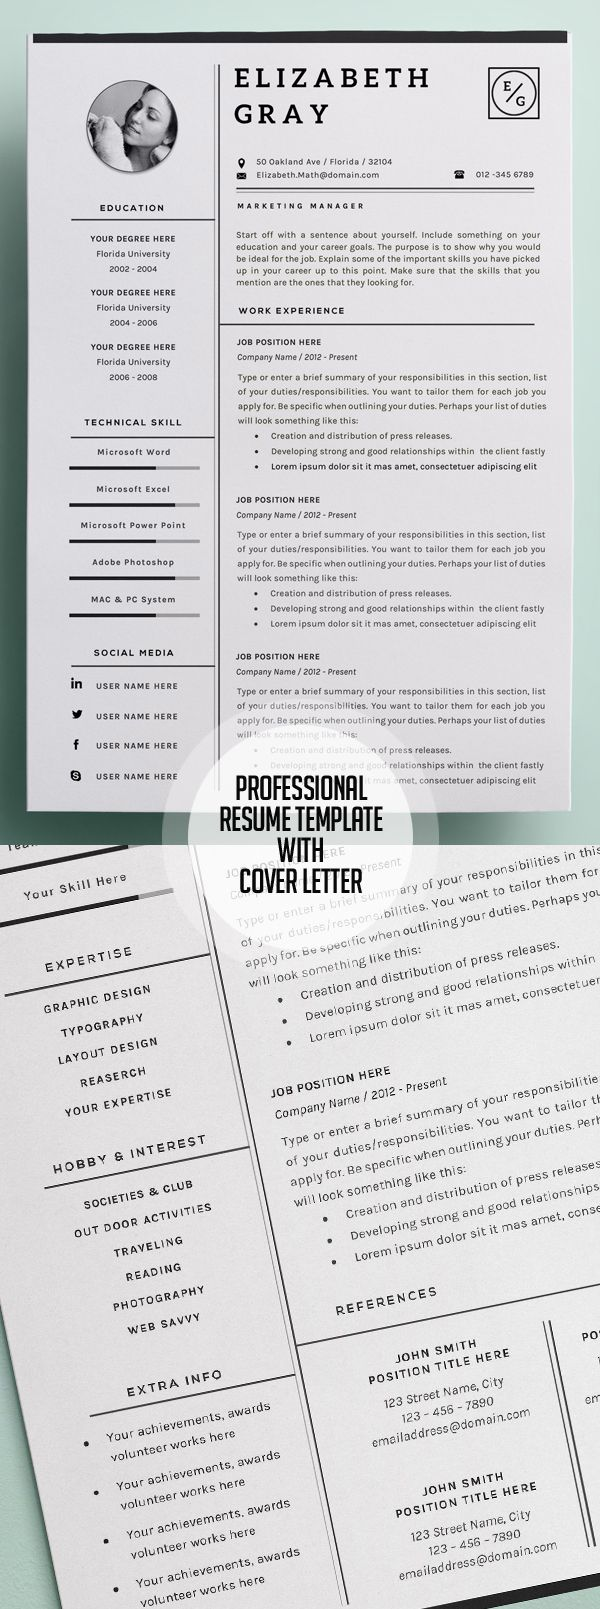 Picnictoimpeachus  Terrific  Resume Ideas On Pinterest  Resume Resume Templates And  With Remarkable Professional And Modern Resume Template With Page Cover Cvtemplate With Agreeable Resume What To Include Also Two Page Resume Examples In Addition Financial Consultant Resume And Teenage Resumes As Well As Resume Tmeplate Additionally Human Service Resume From Pinterestcom With Picnictoimpeachus  Remarkable  Resume Ideas On Pinterest  Resume Resume Templates And  With Agreeable Professional And Modern Resume Template With Page Cover Cvtemplate And Terrific Resume What To Include Also Two Page Resume Examples In Addition Financial Consultant Resume From Pinterestcom